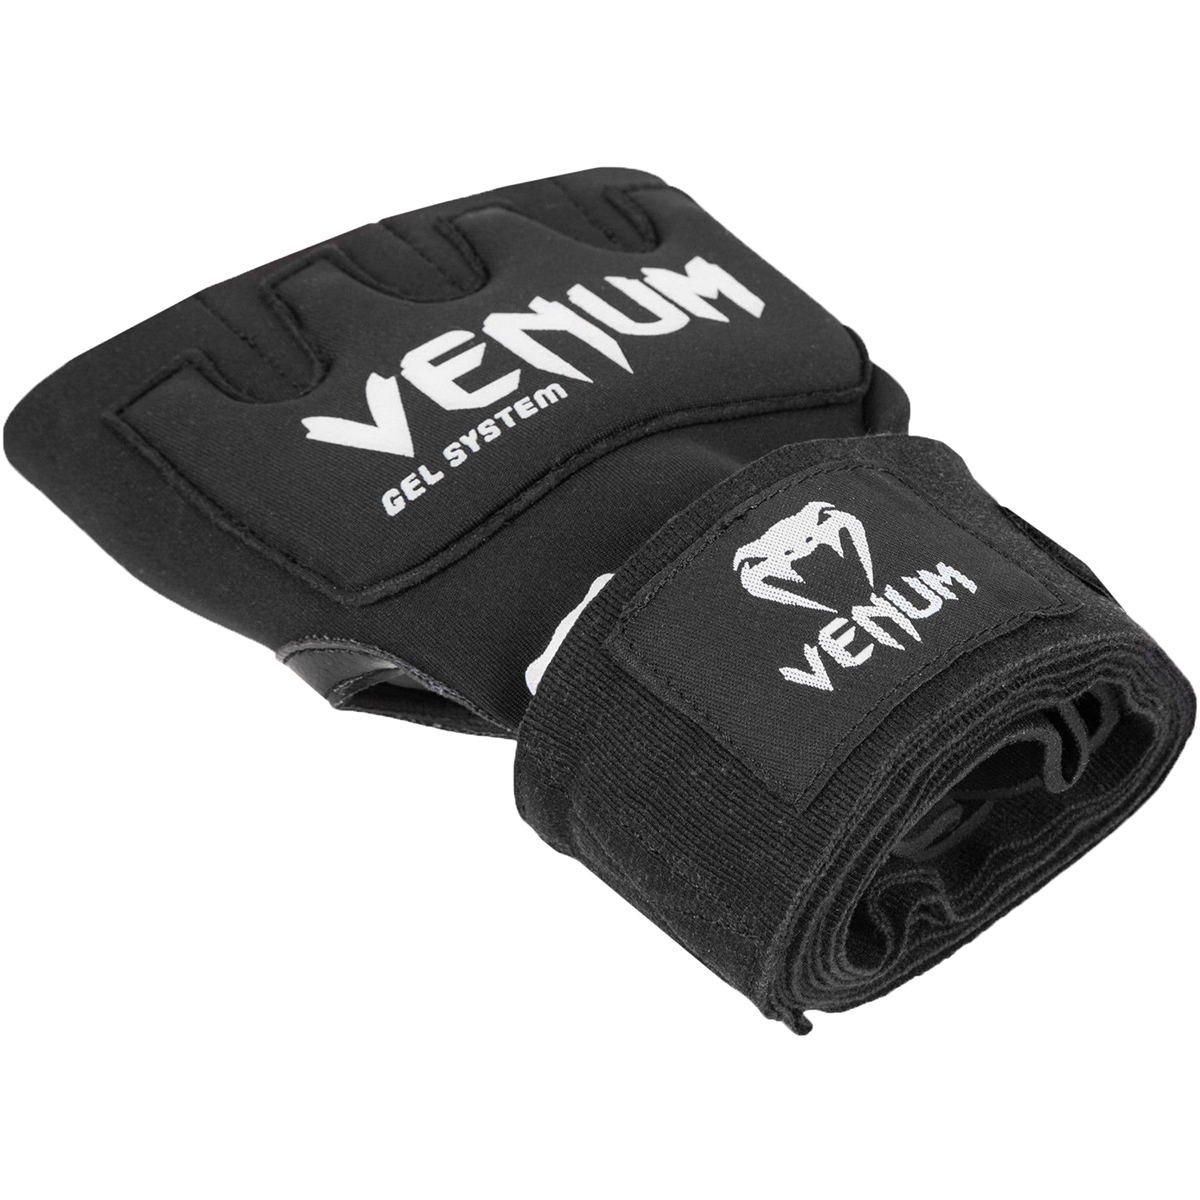 Venum-Kontact-Protective-Shock-Absorbing-Gel-MMA-Glove-Wraps thumbnail 12